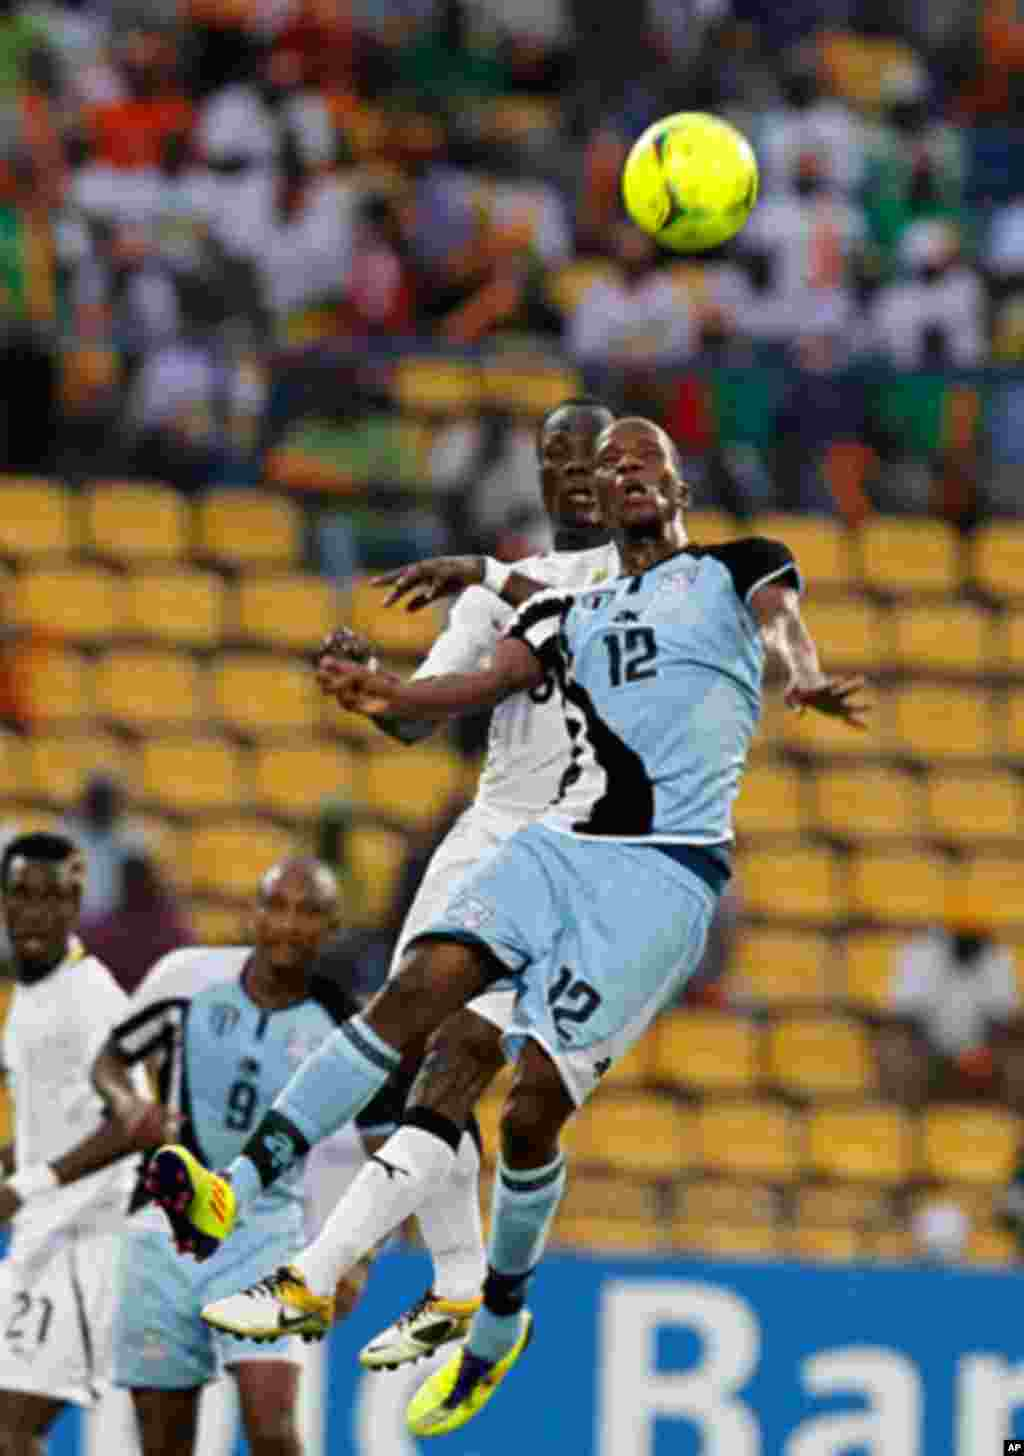 Botswana's Patrick Motsepe (front) challenges Anthony Annan of Ghana during their African Cup of Nations Group D soccer match in FranceVille Stadium.